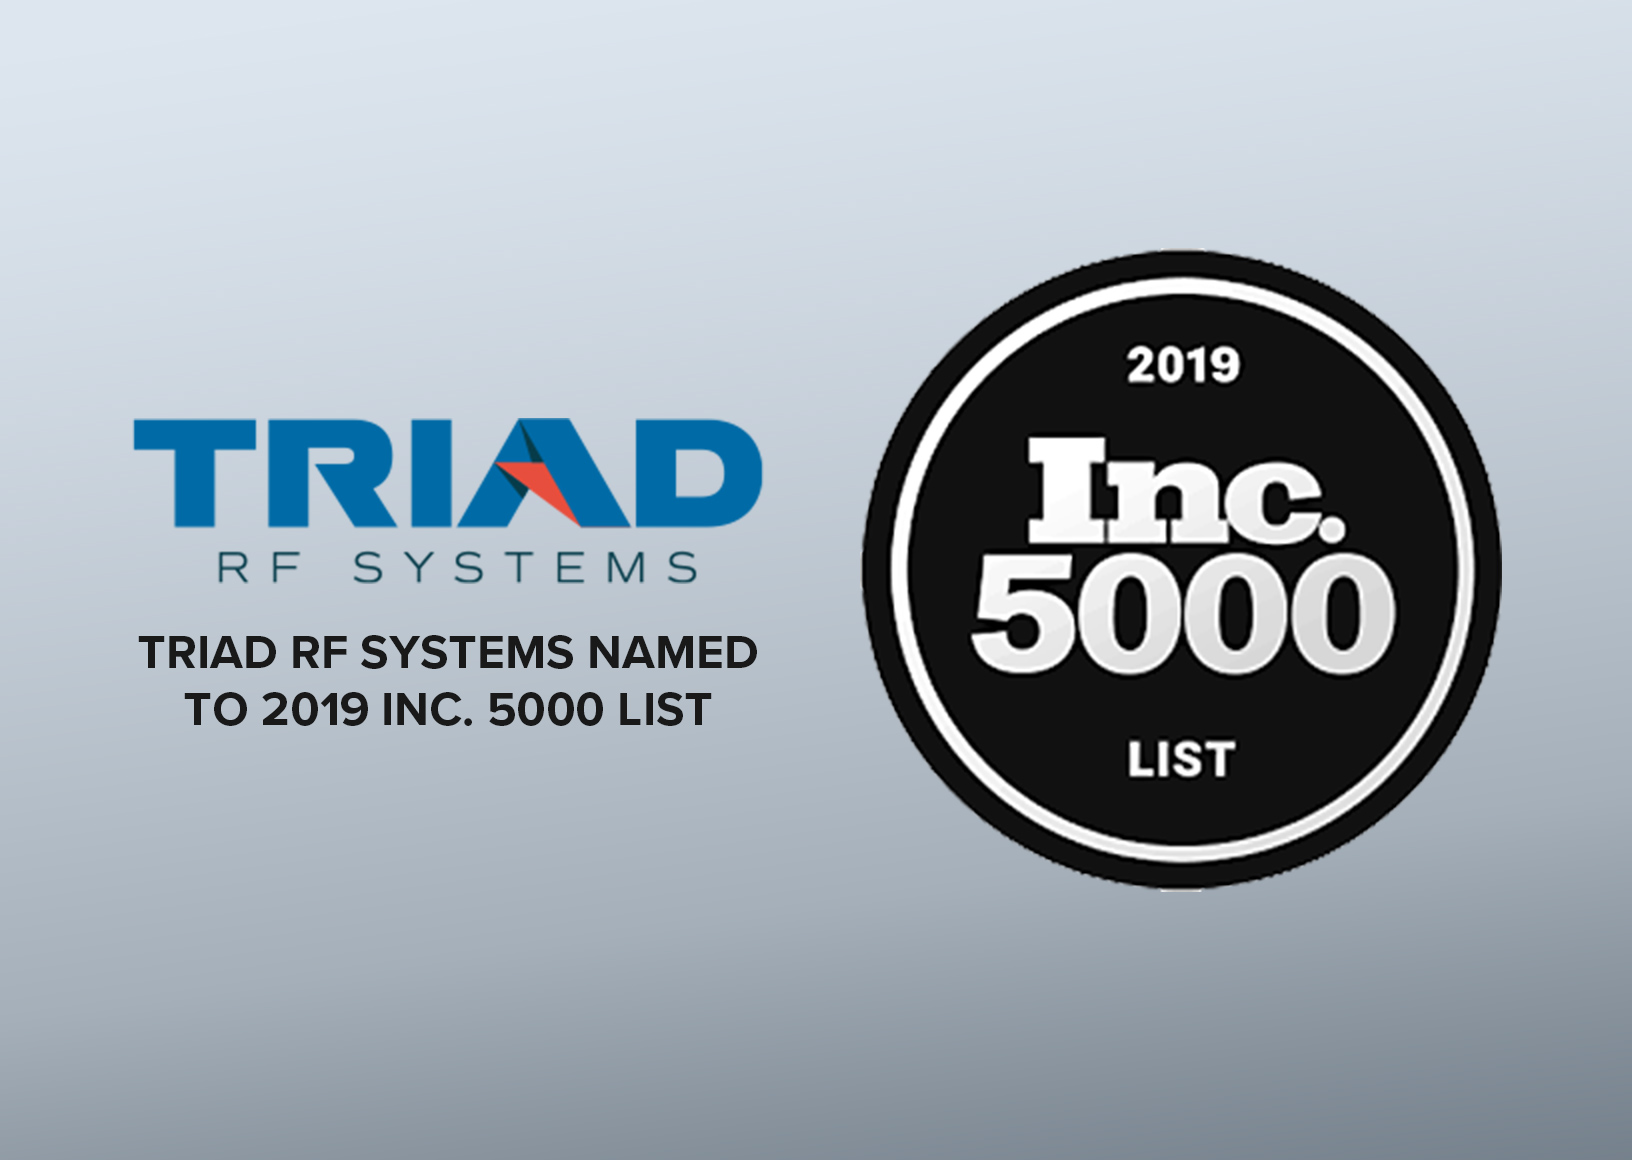 Triad RF Systems Named to 2019 Inc. 5000 List of Fastest Growing Companies